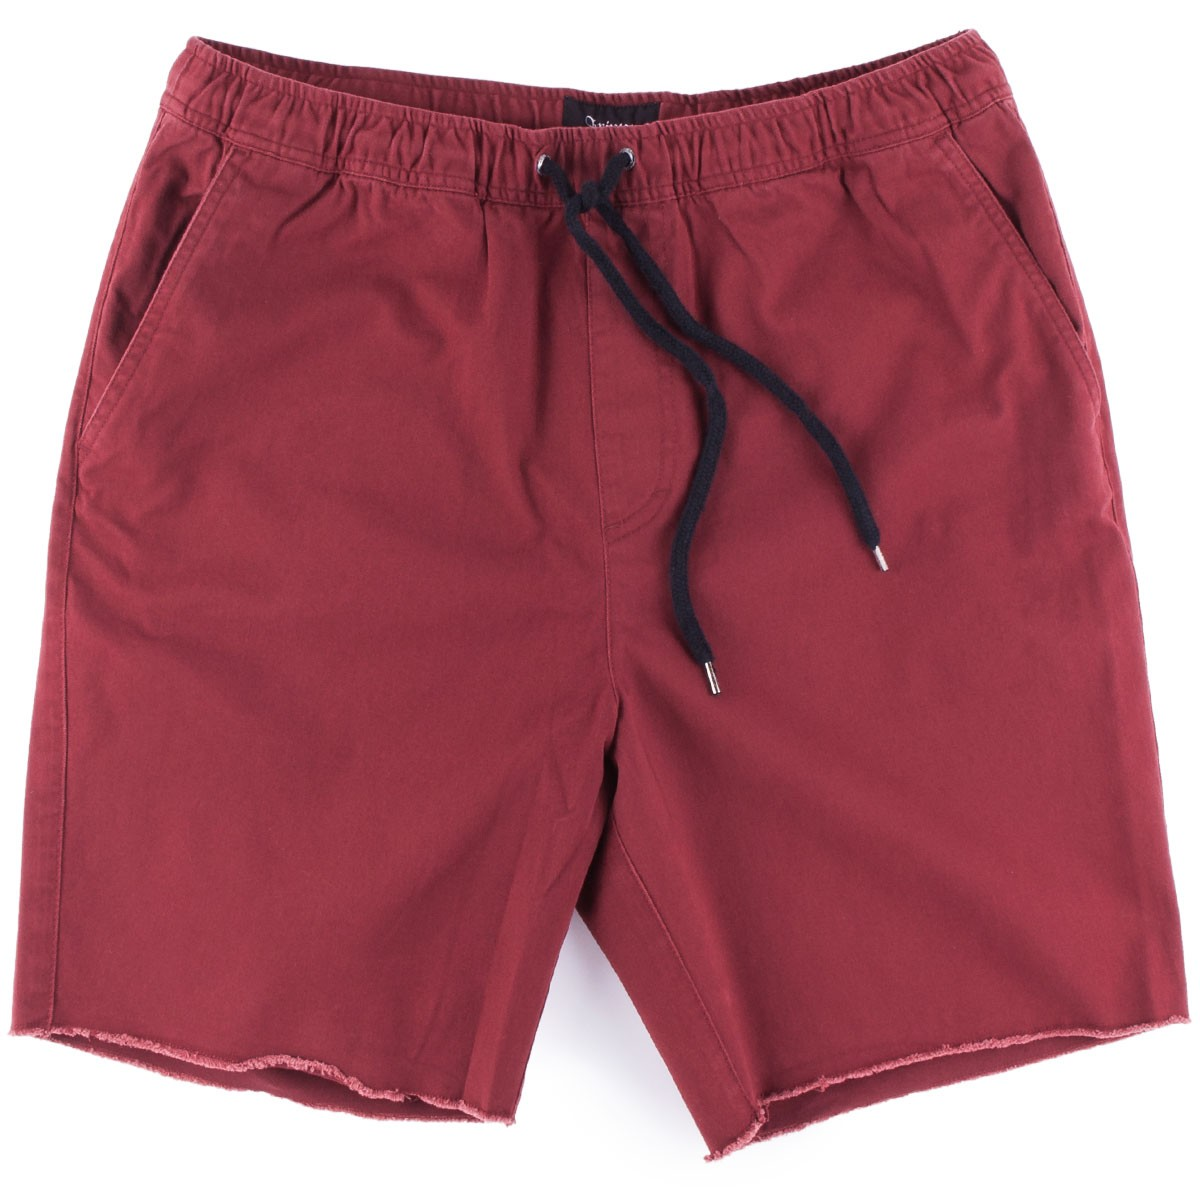 Brixton Madrid Shorts - Burgundy